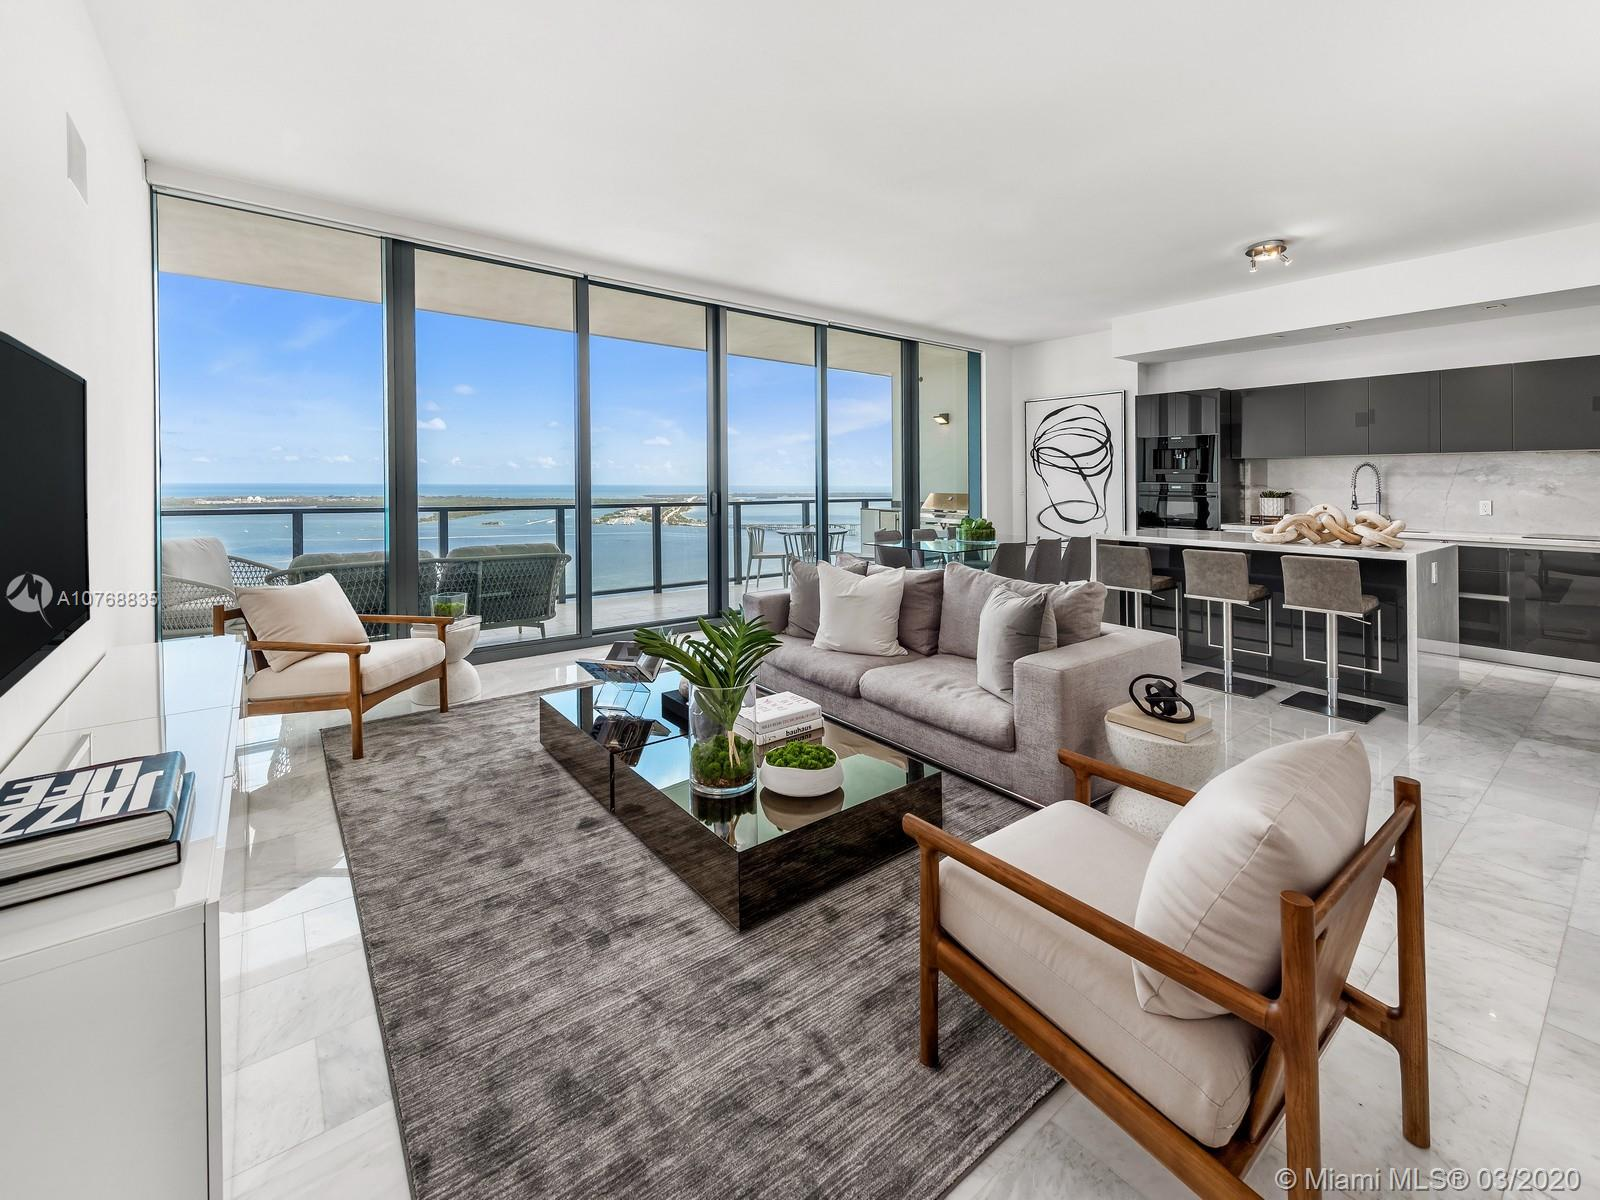 Luxury living at it's finest, this 2 bedroom 3 bath plus den includes 1,627SQFT skyline views with top of the line appliances, smart home, open kitchen floorplan with summer kitchen all facing unobstructed bay views. Fully upgraded including a large storage unit under a/c and 2 assigned parking spaces. This luxurious building offers all the services and amenities for all residents whom want to be pampered all year round. Security, valet and concierge 24/7. Bay view swimming pools with wet bar and full floor state of the art fitness center. Echo Brickell a 57 story skyscraper tastefully designed by Carlos Ott. Located on the Brickell Corridor. Adjacent to the Four Season Hotel, short distance to the new Brickell City Center and Mary Brickell Village.